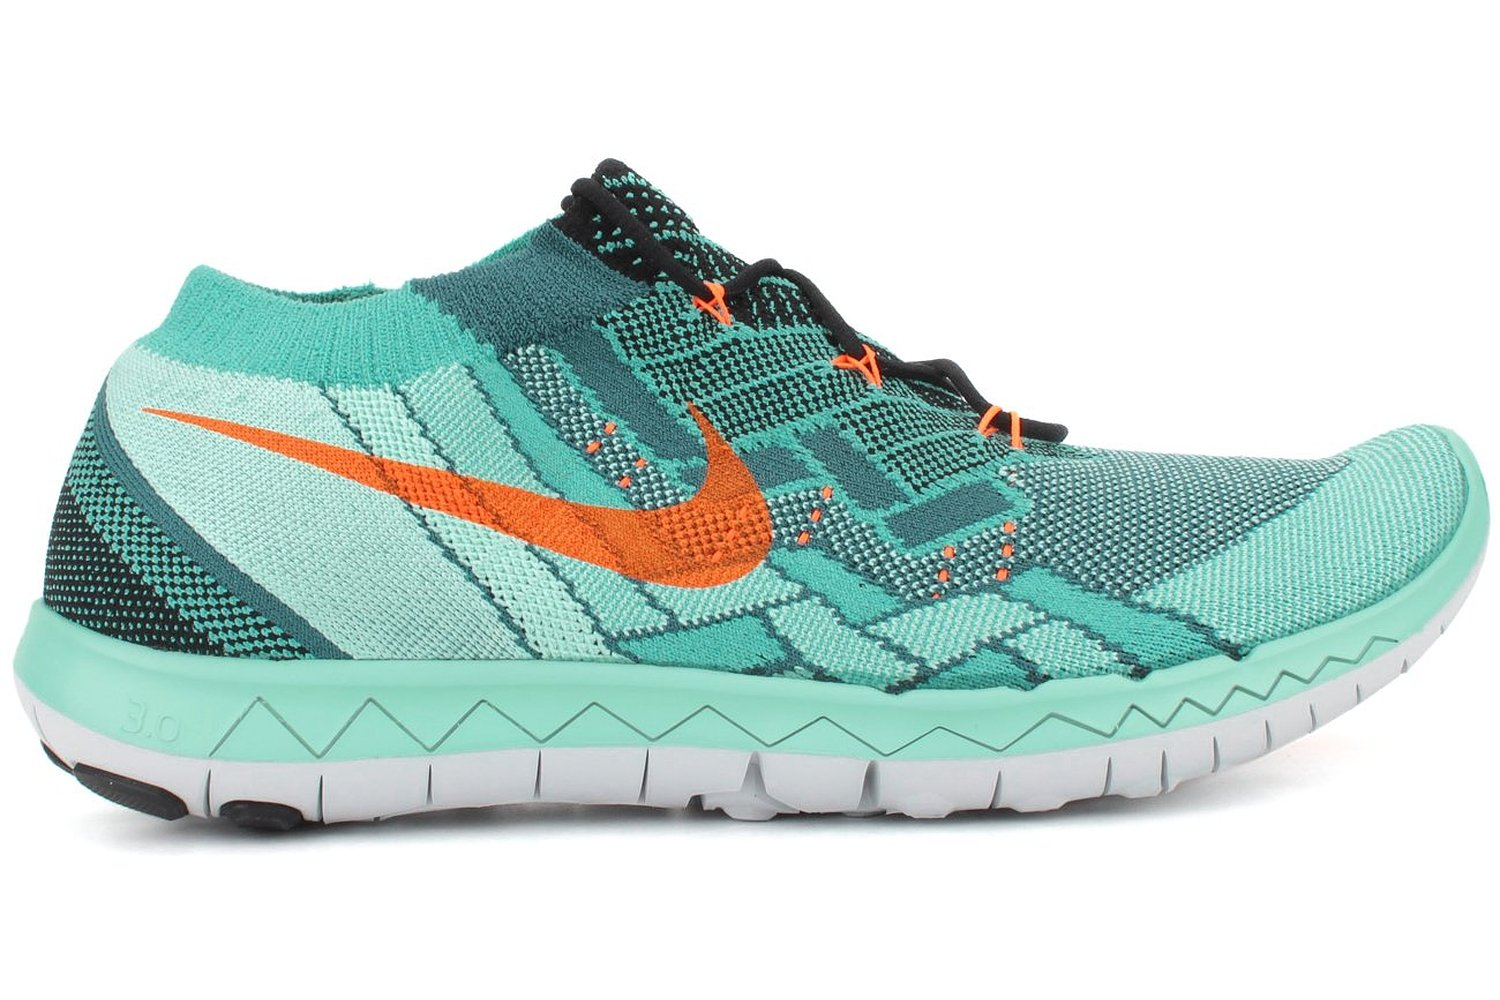 infancia plataforma Recuperar  Nike's Free 3.0 Flyknit Review | Best Running Shoes